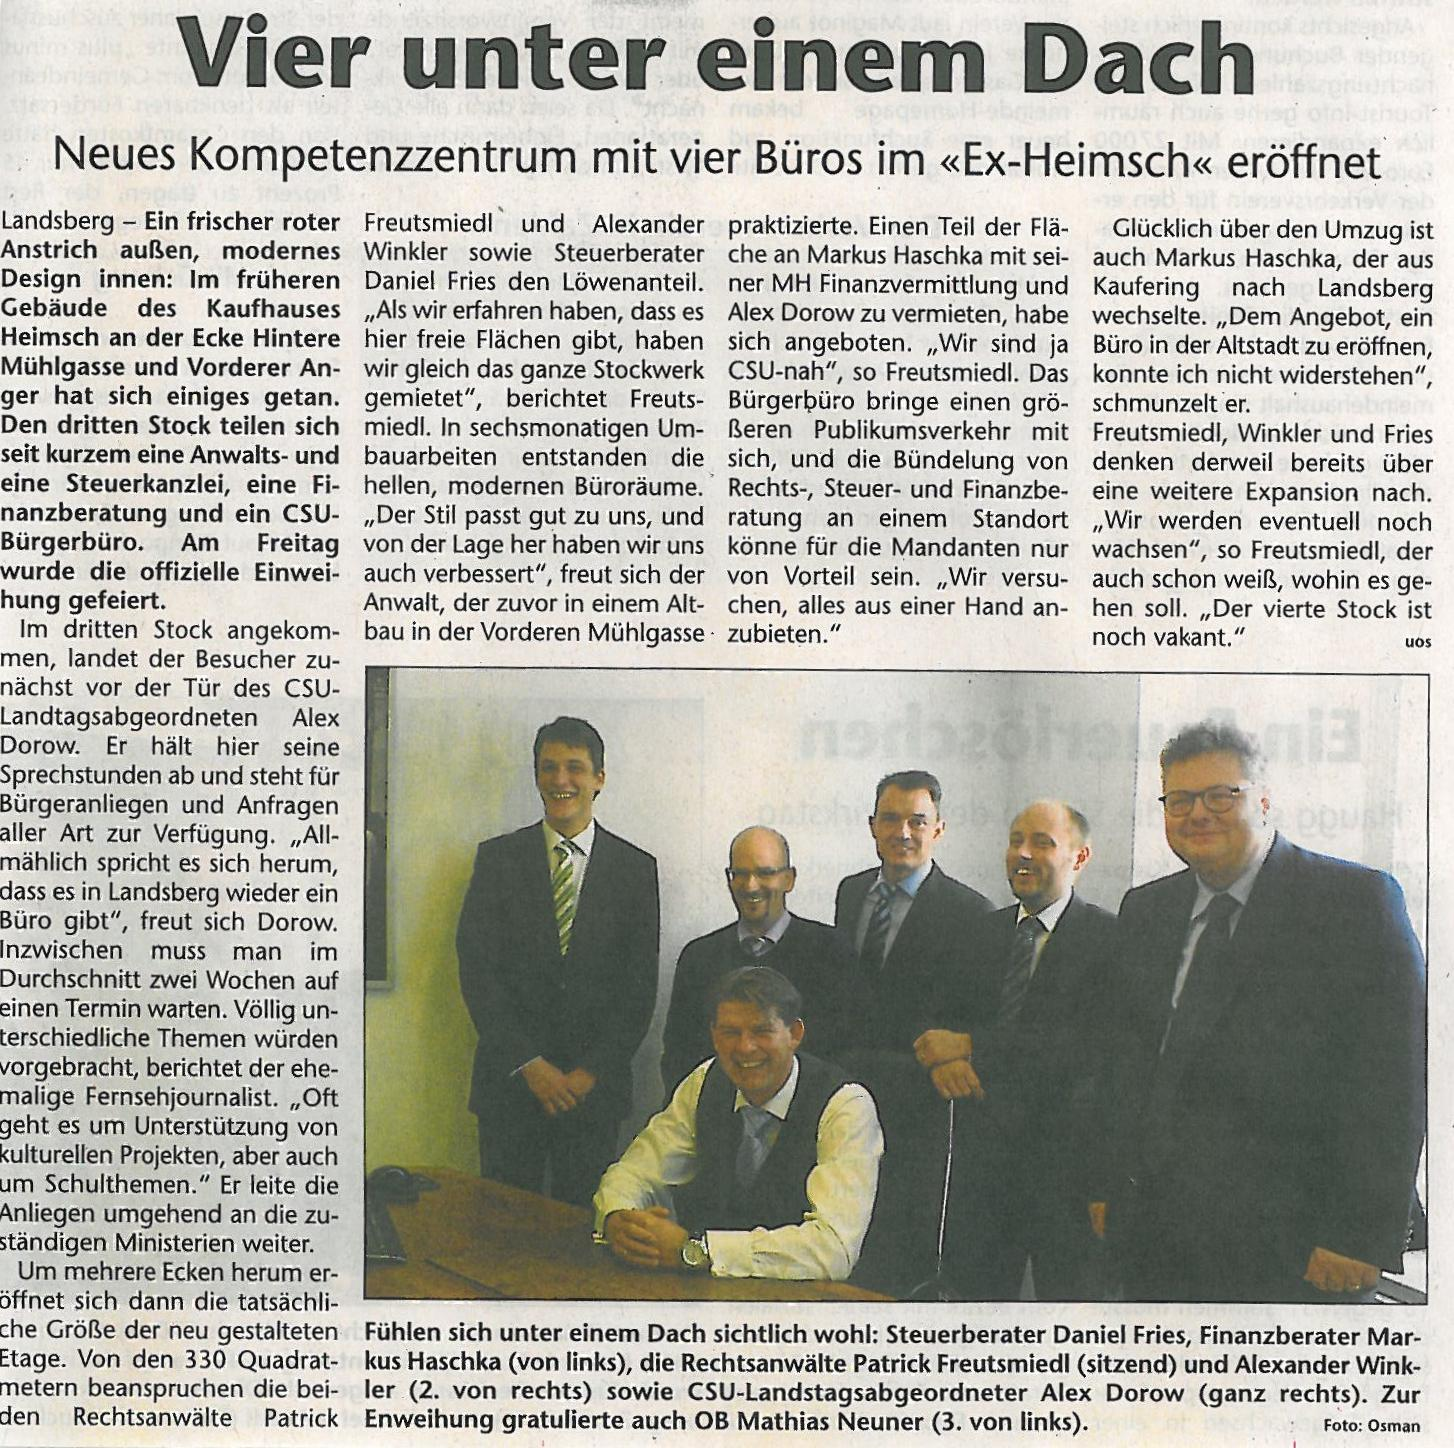 Landsberger Tagblatt, November 2012